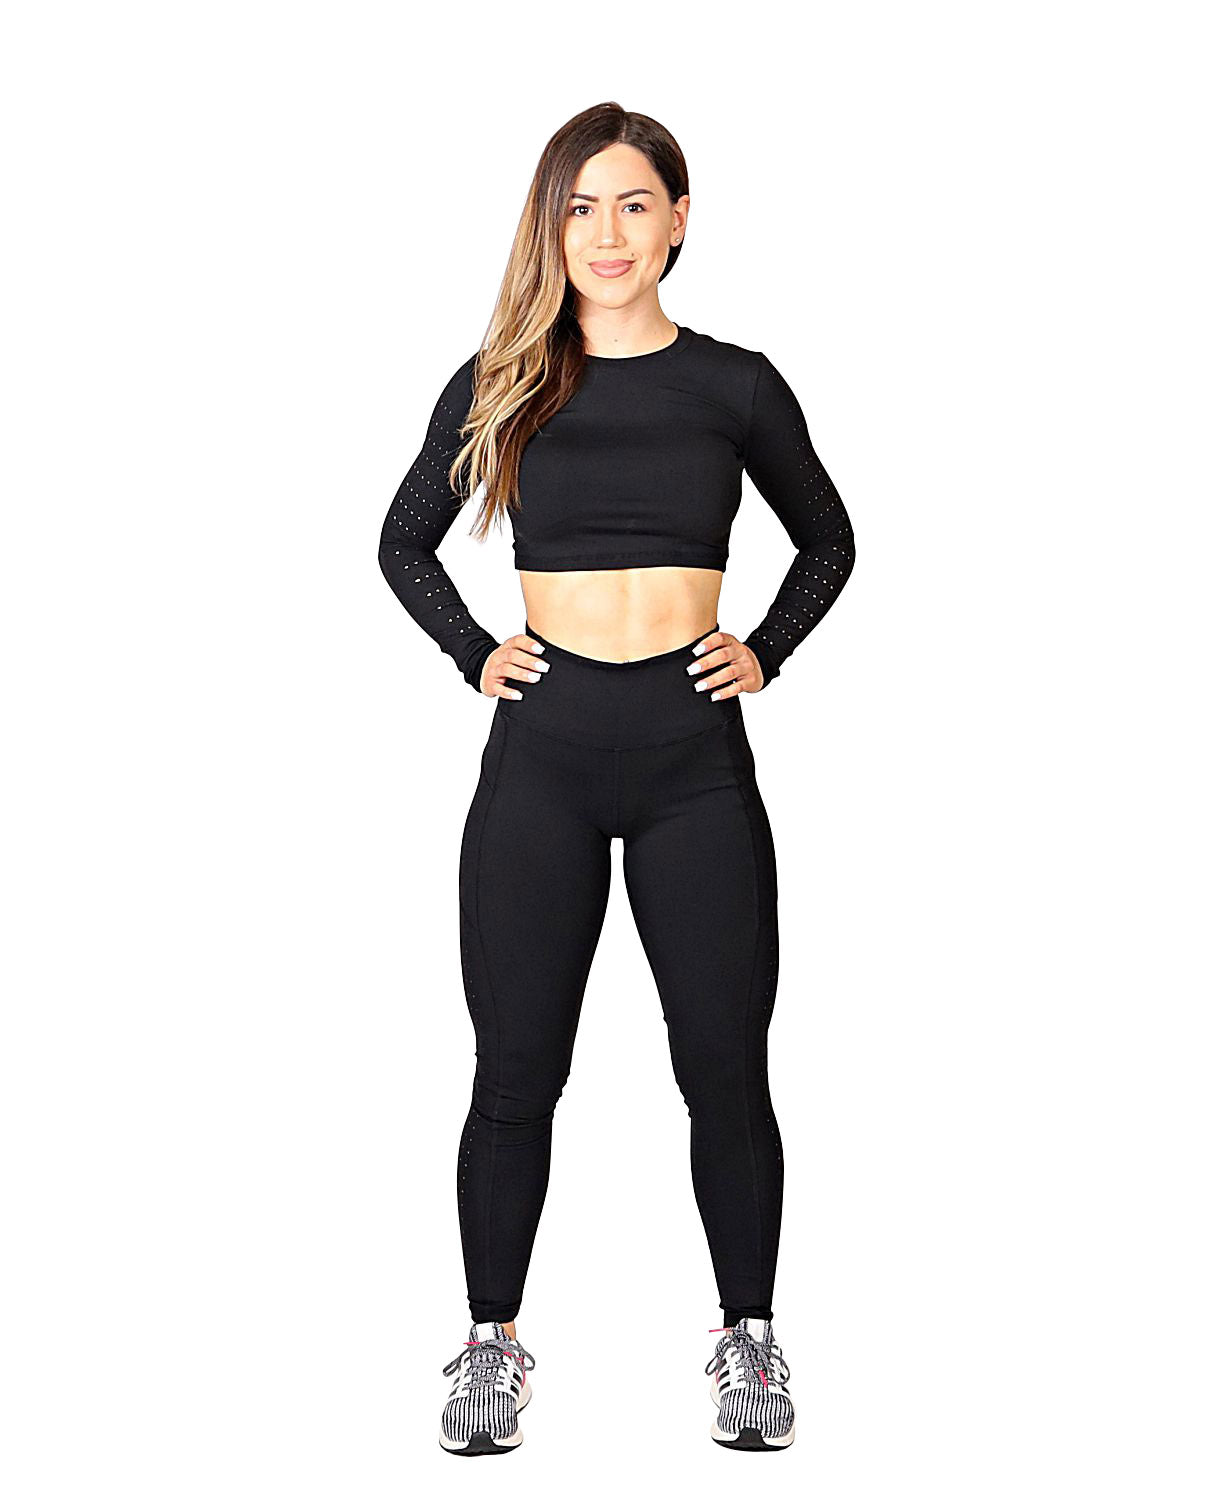 SCULPT LASER CUT LEGGINGS - FLEX-N-FLEX